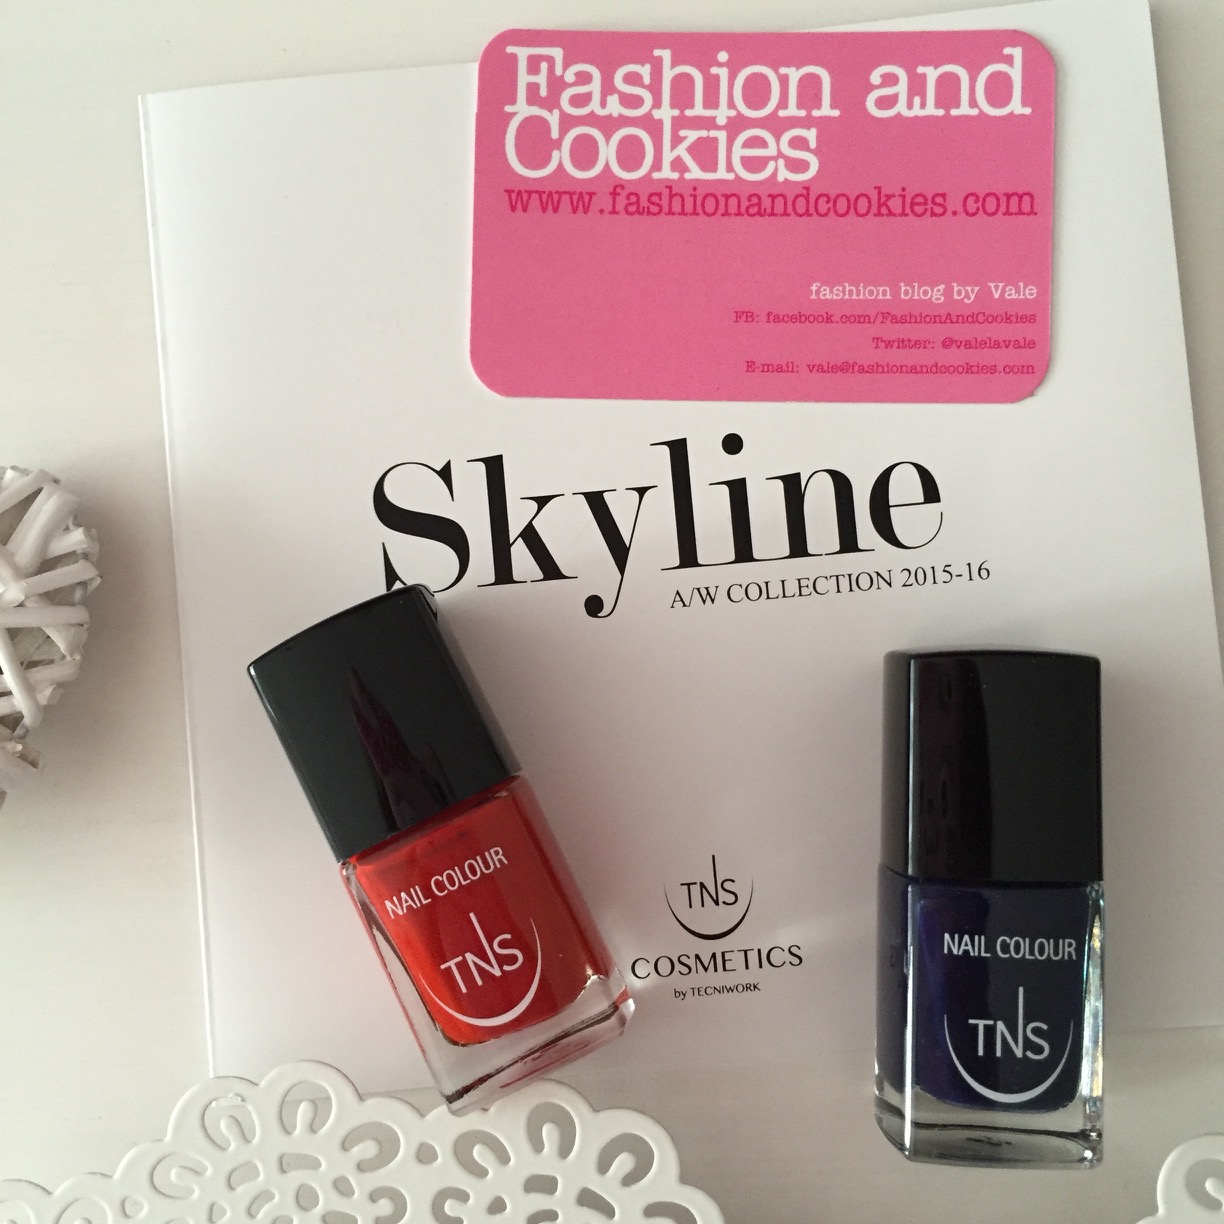 Skyline Collection, Heartbreaker and Night Life from Skyline limited edition TNS Cosmetics on Fashion and Cookies beauty blog, beauty blogger